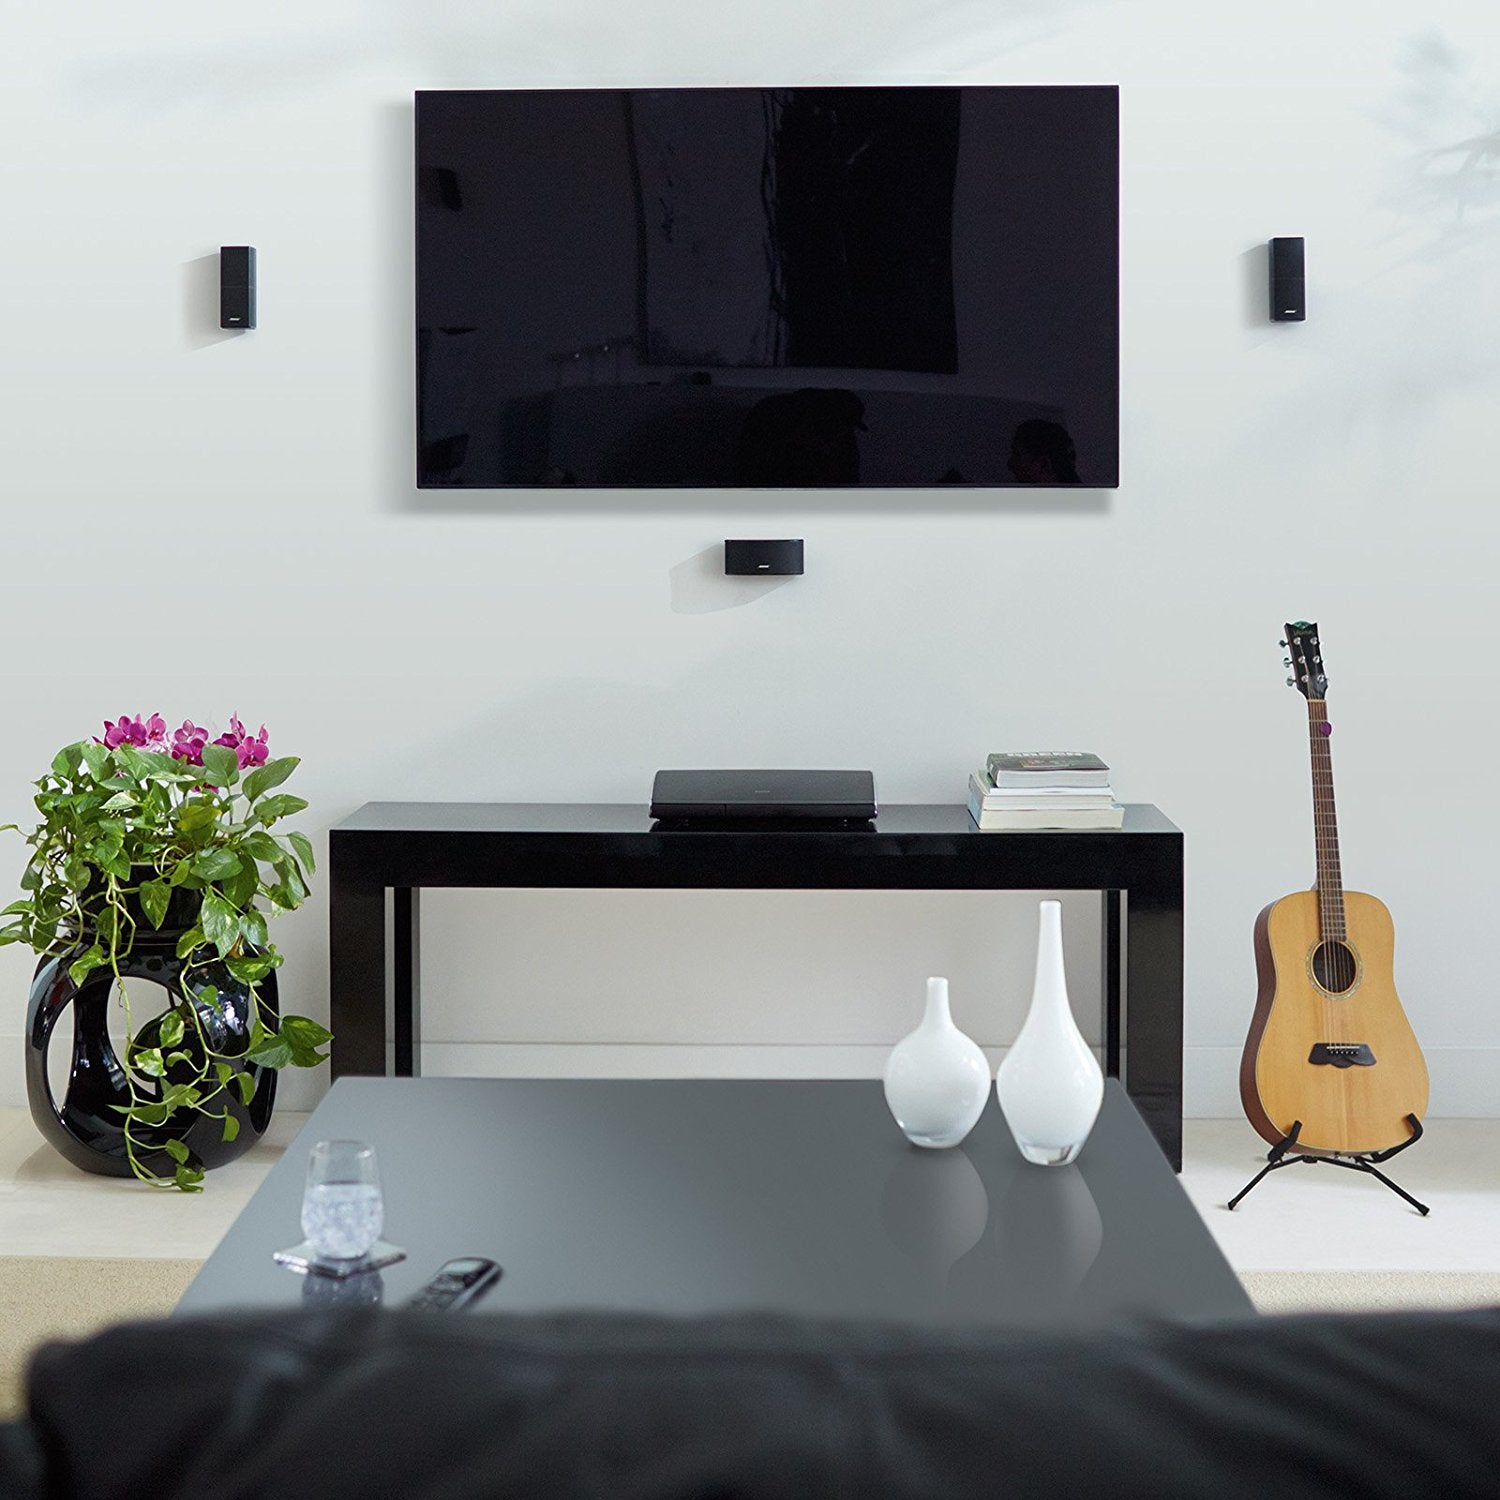 Lifestyle® SoundTouch® 535 Entertainment System - Isingtec